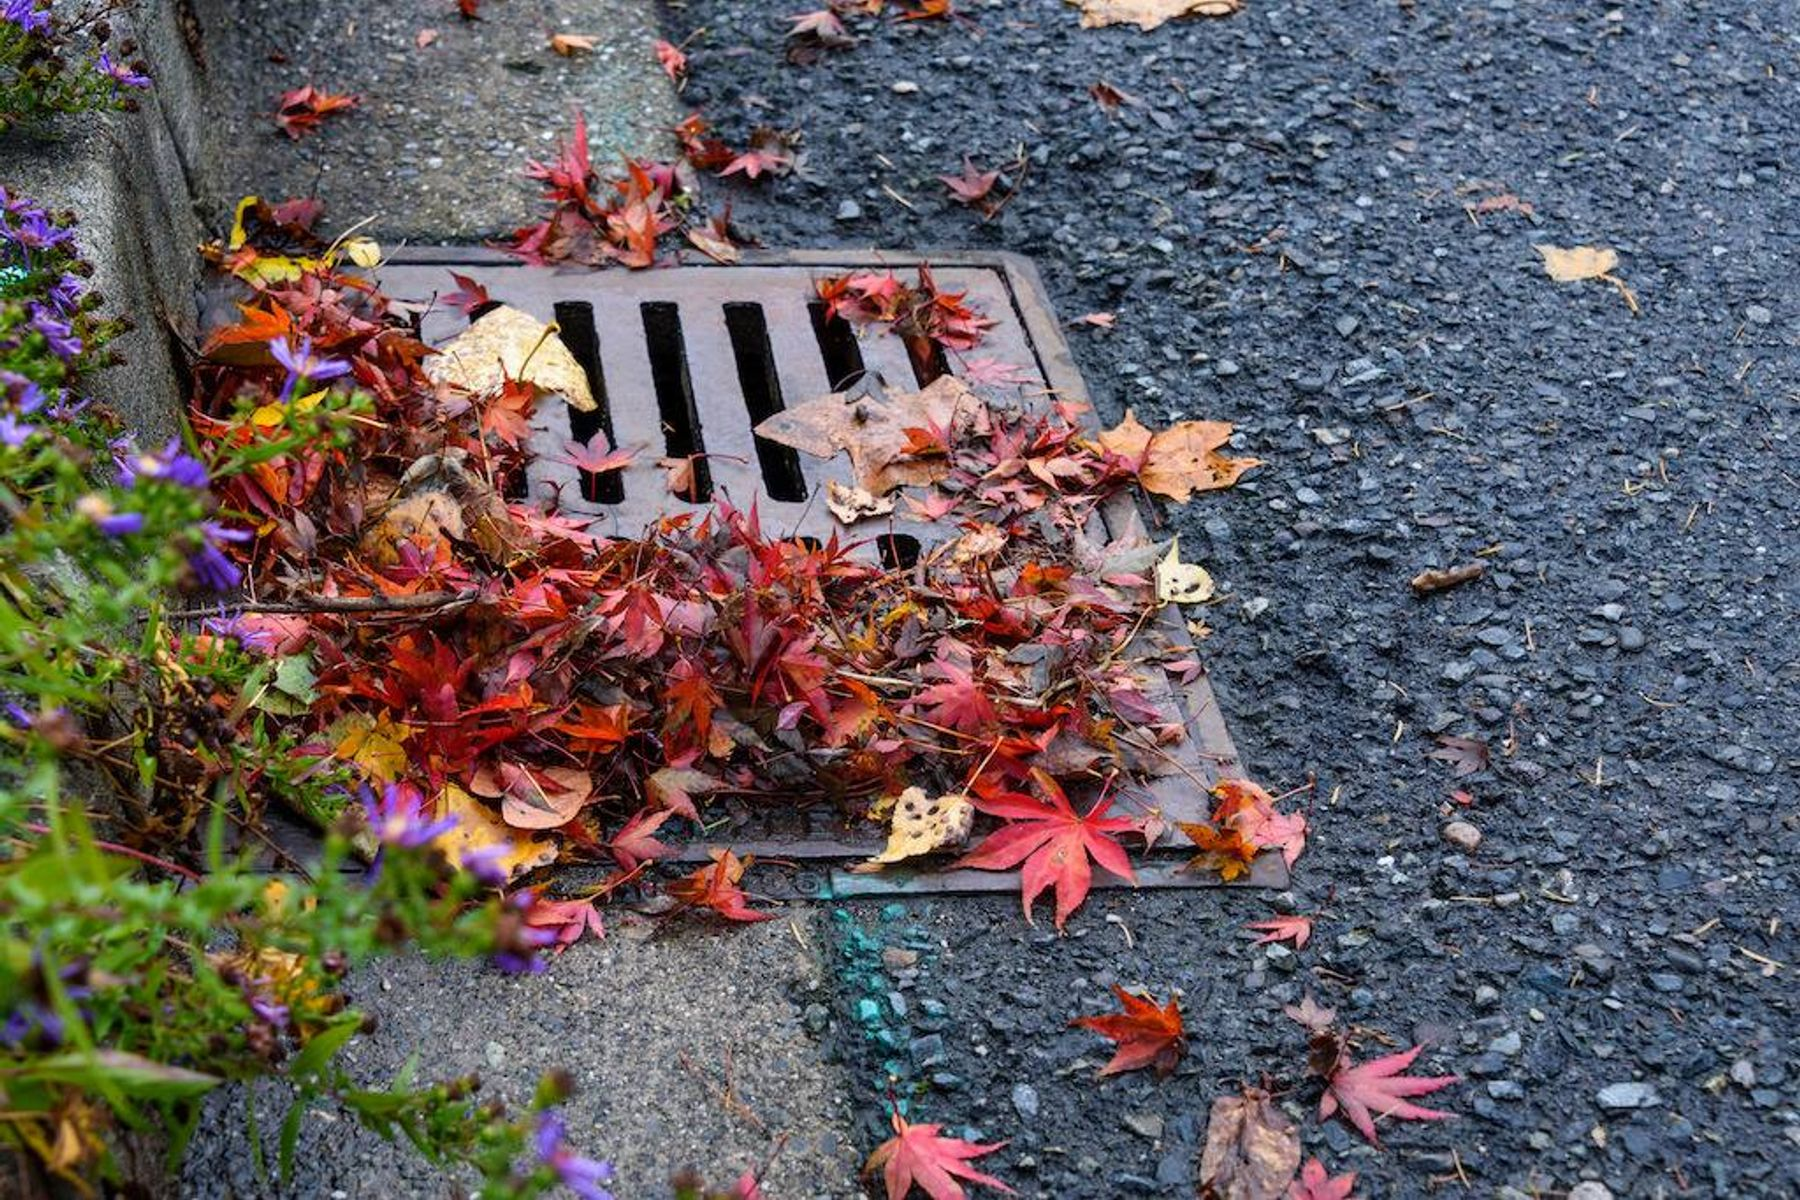 Outside drain grate blocked with leaves